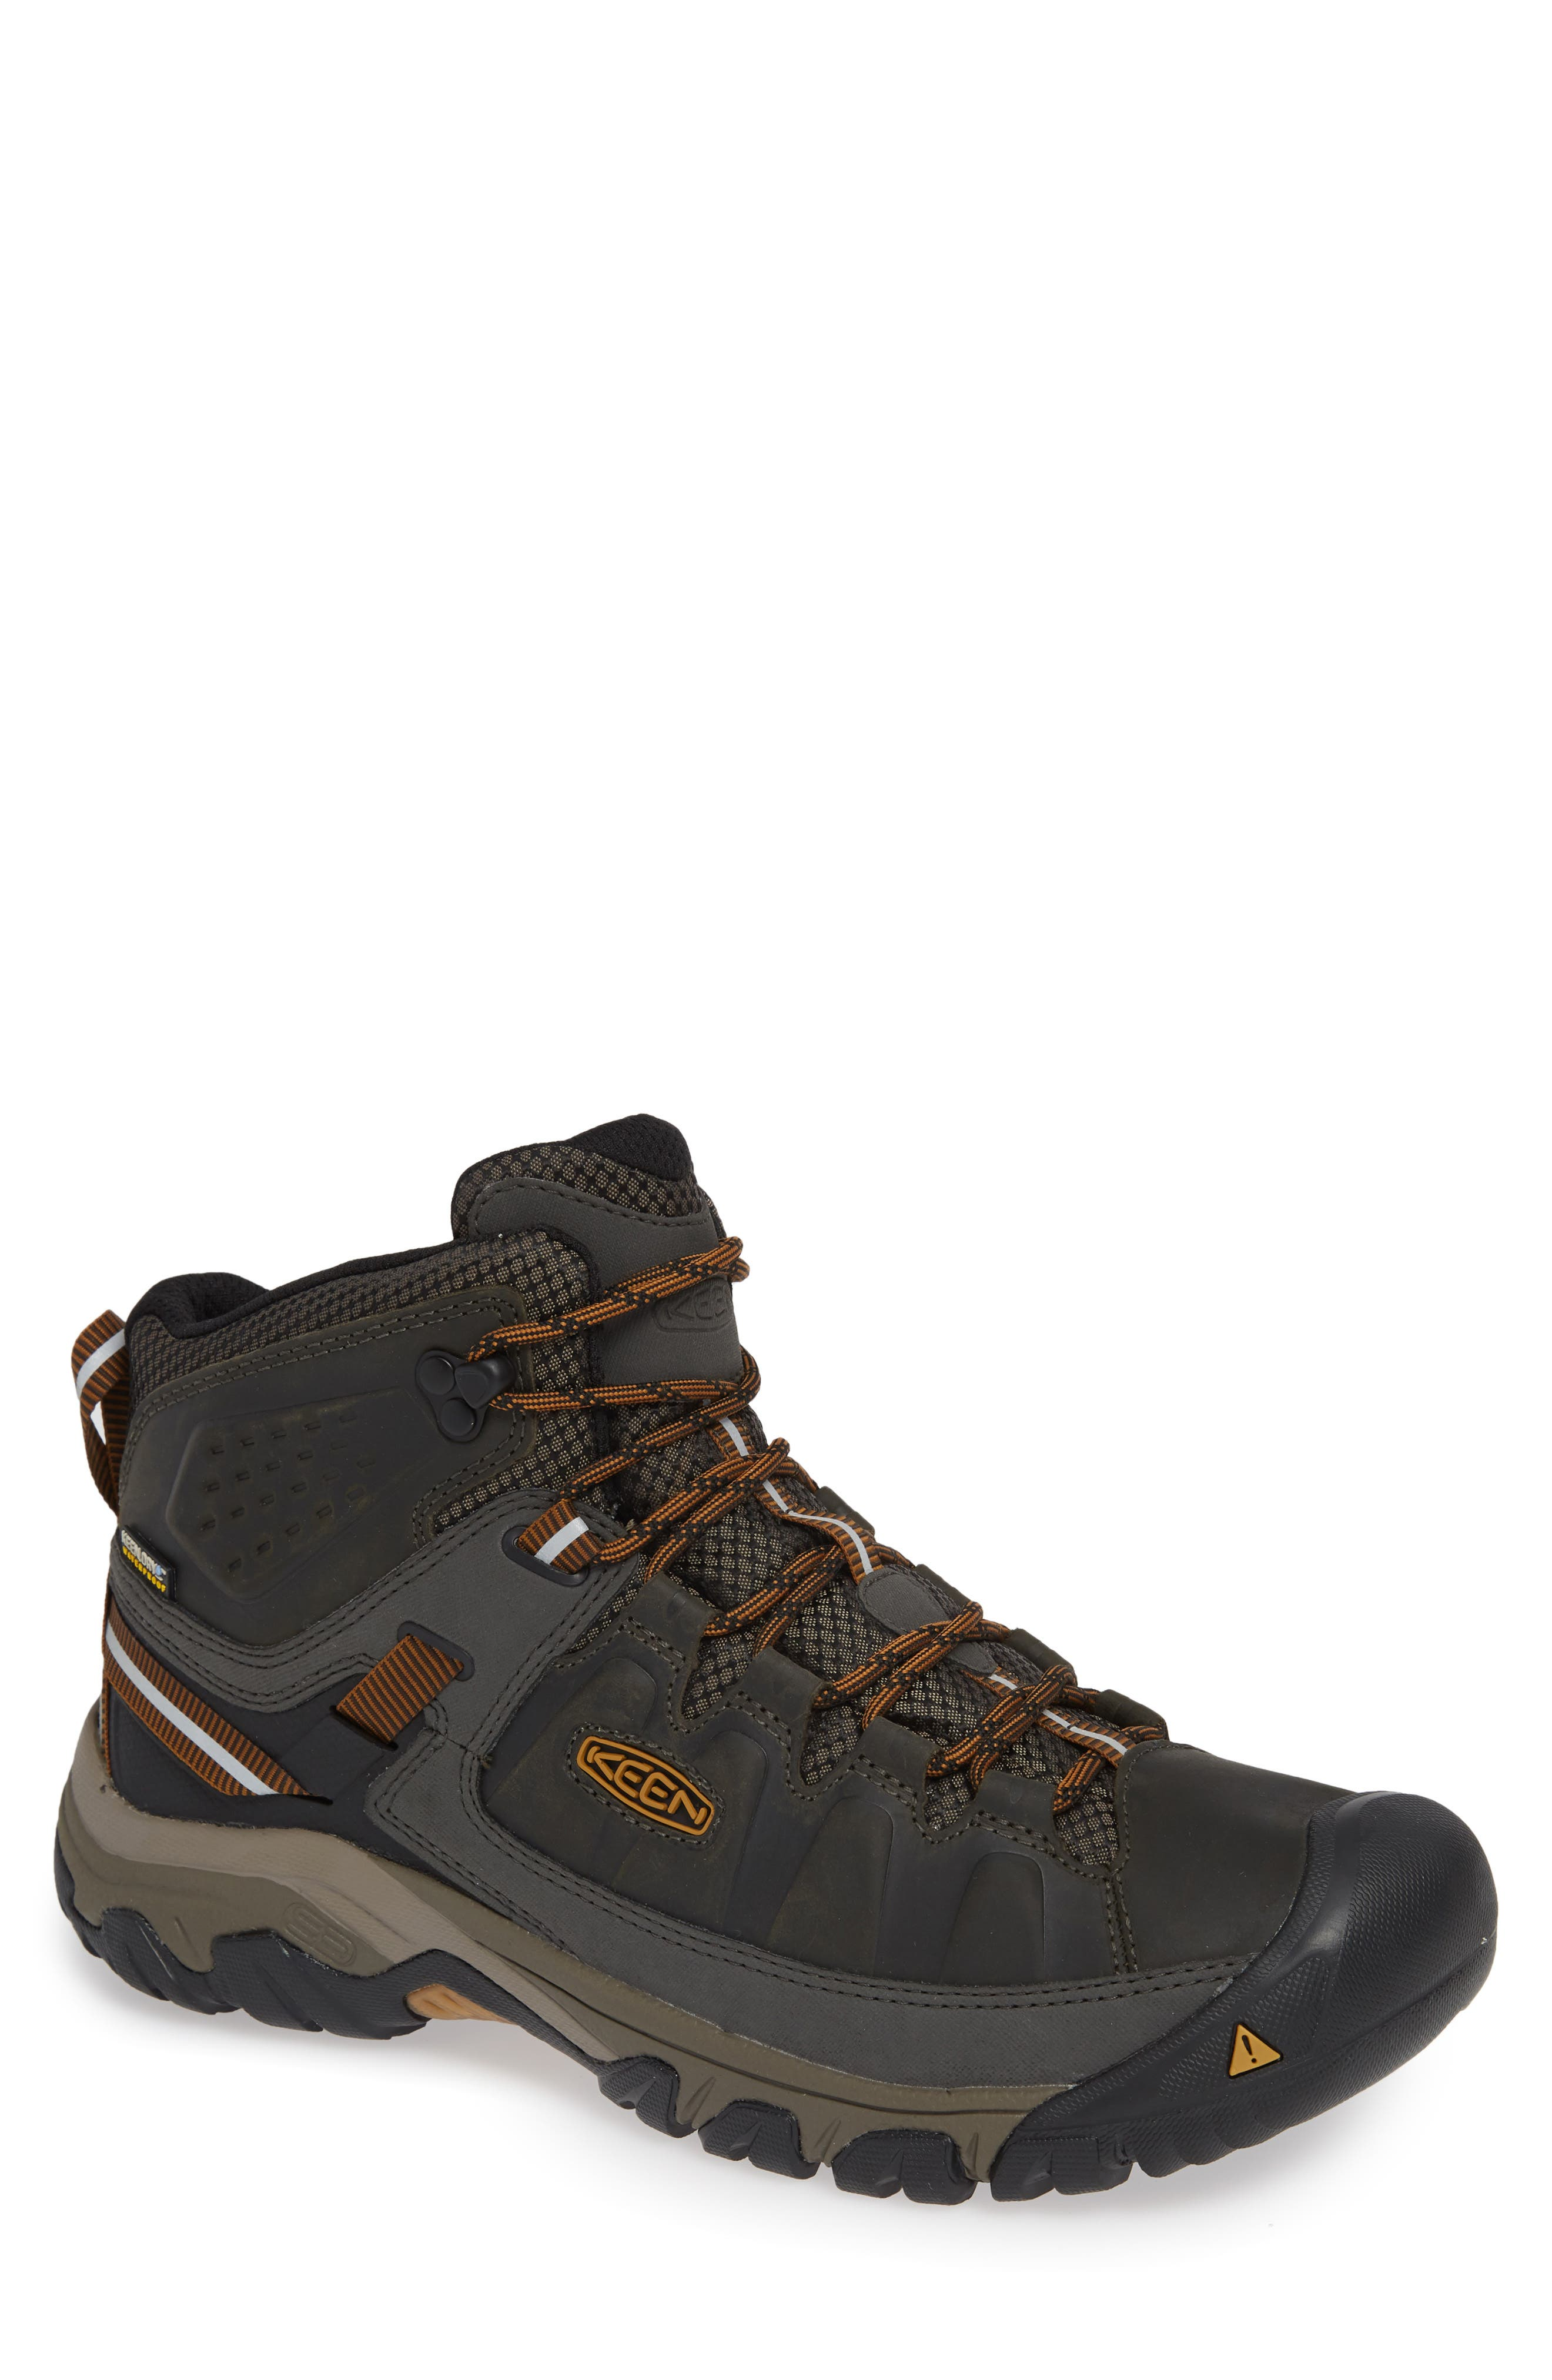 A durable lace-up hiking boot offers excellent traction and features a waterproof KEEN. Dry lining to keep feet free from uncomfortable moisture. A metatomical footbed offers superior cushioning and arch support, while the high-traction rubber sole provides multi-directional grip and stability in any terrain. Style Name: Keen Targhee Iii Mid Waterproof Hiking Boot (Men). Style Number: 5697989. Available in stores.